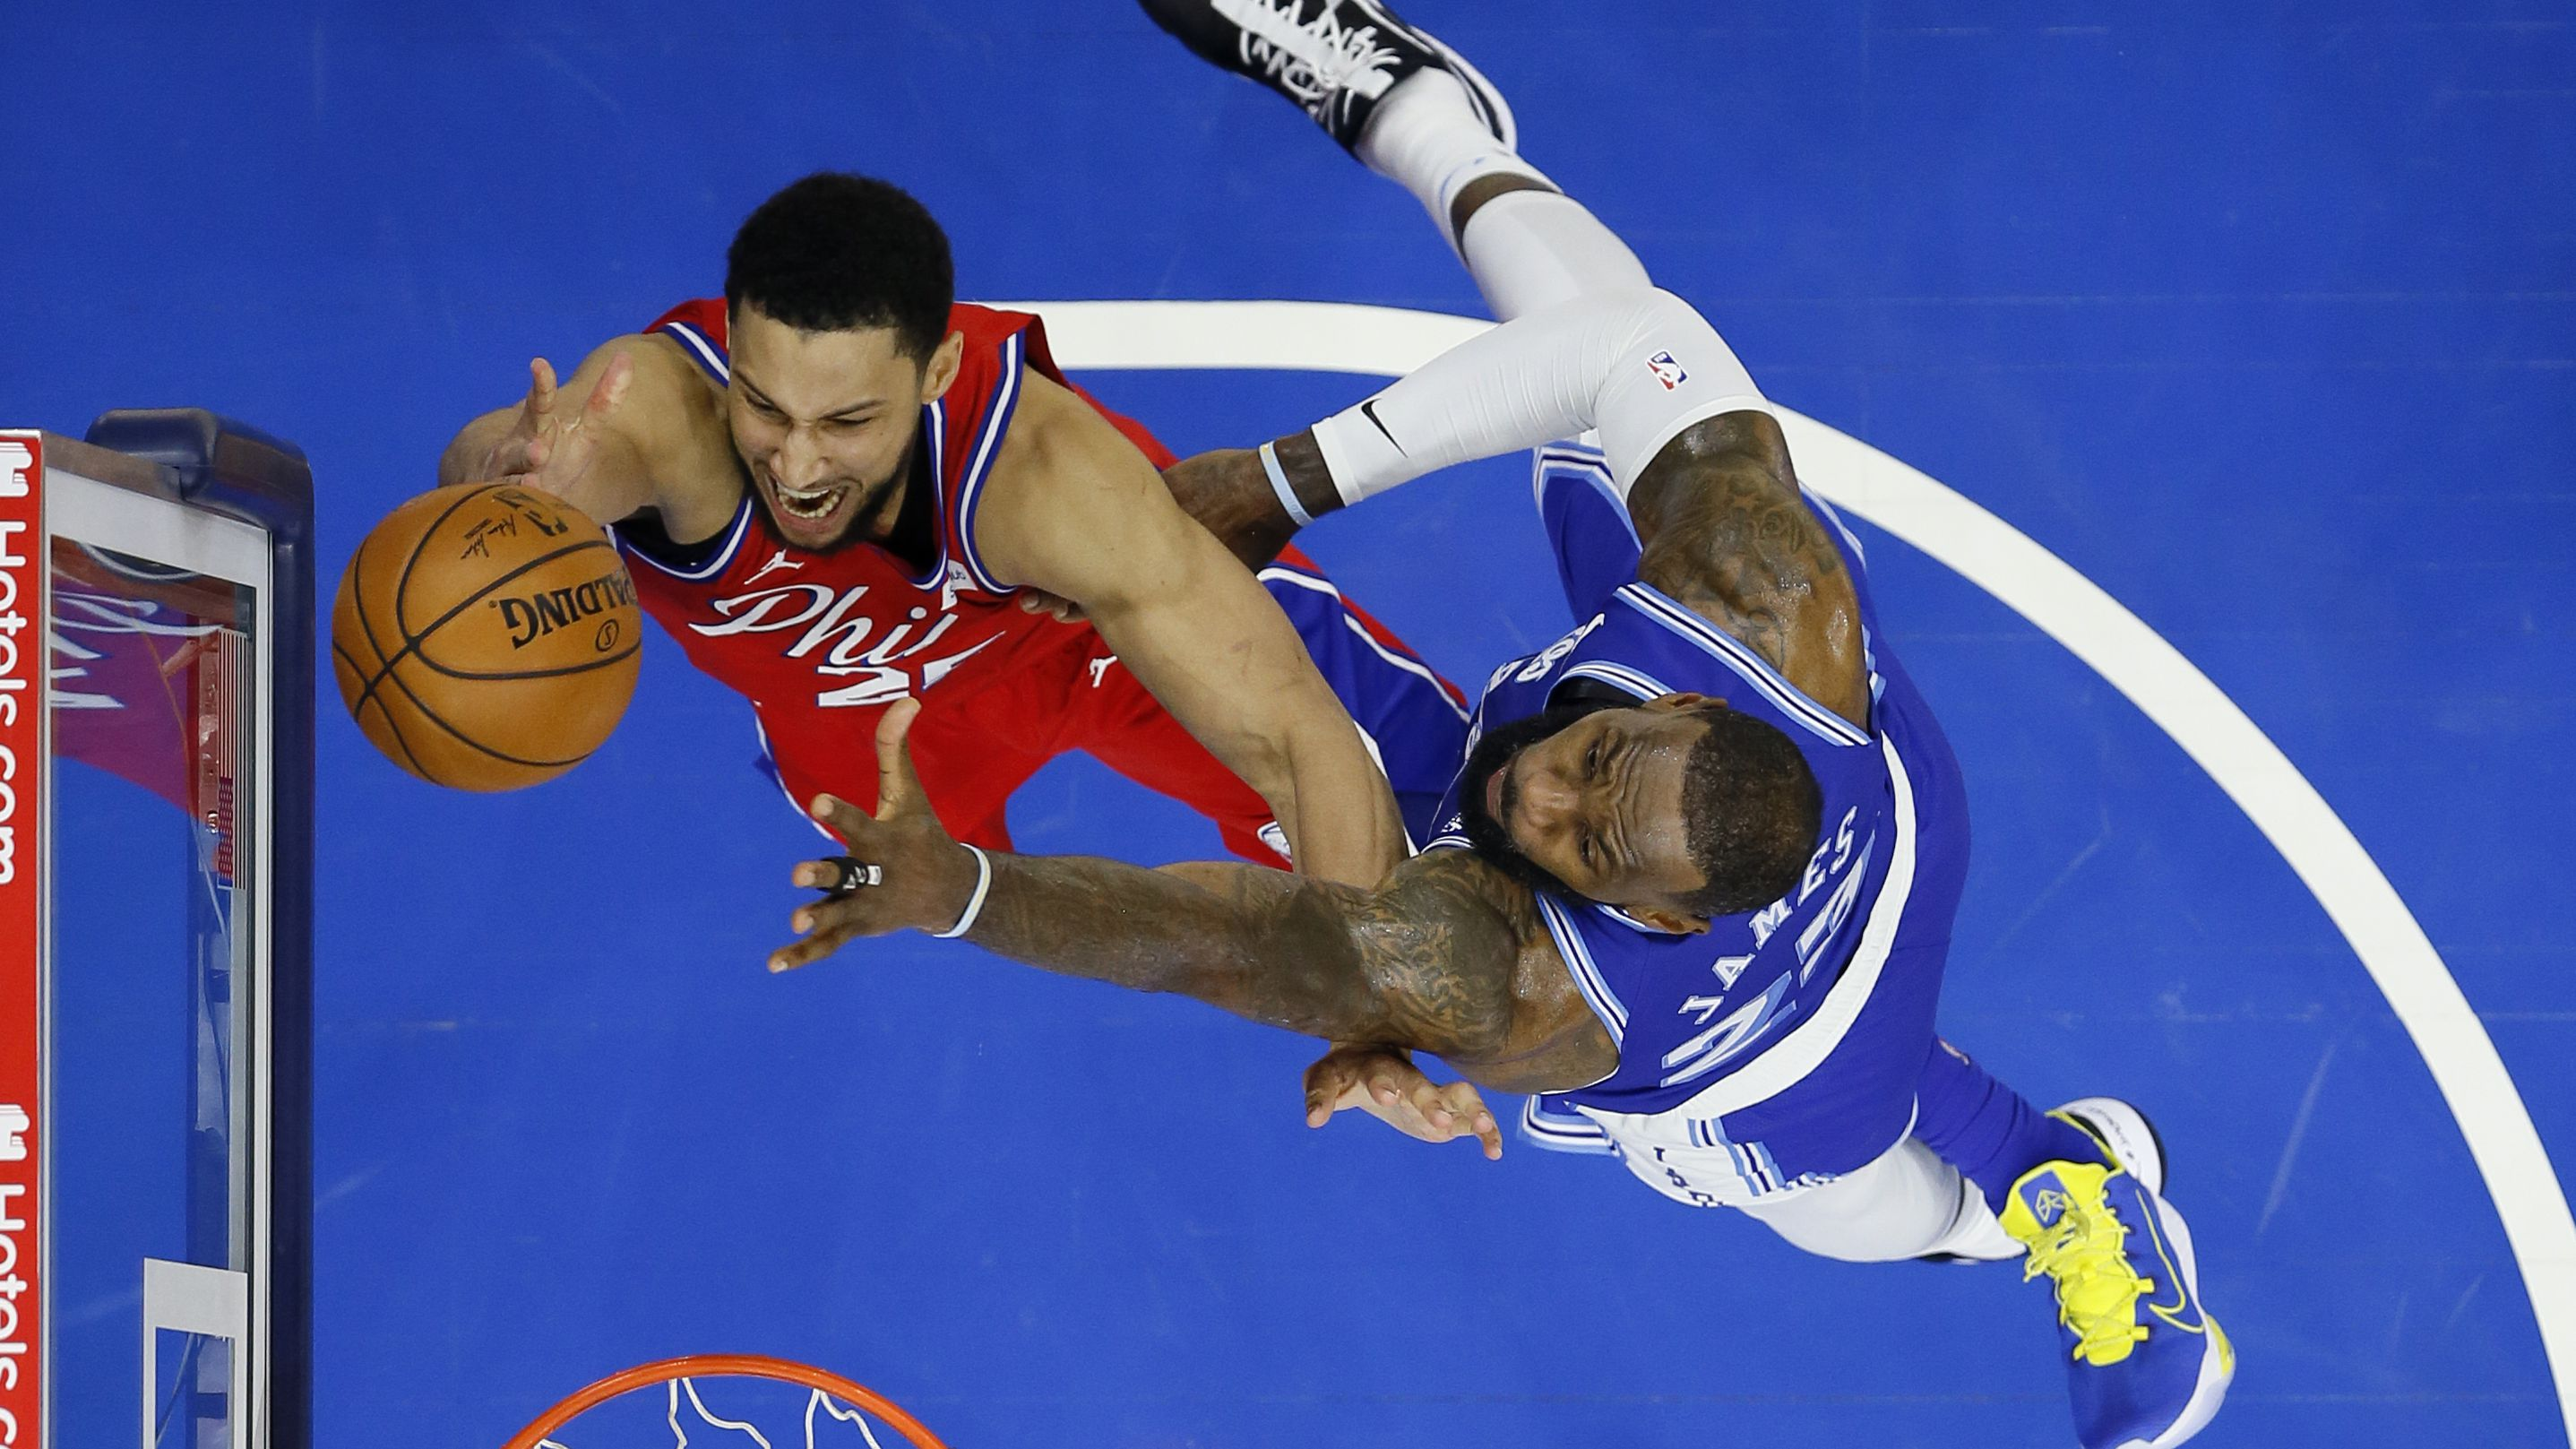 Ben Simmons records another triple double as the 76ers upset LeBron James' Lakers